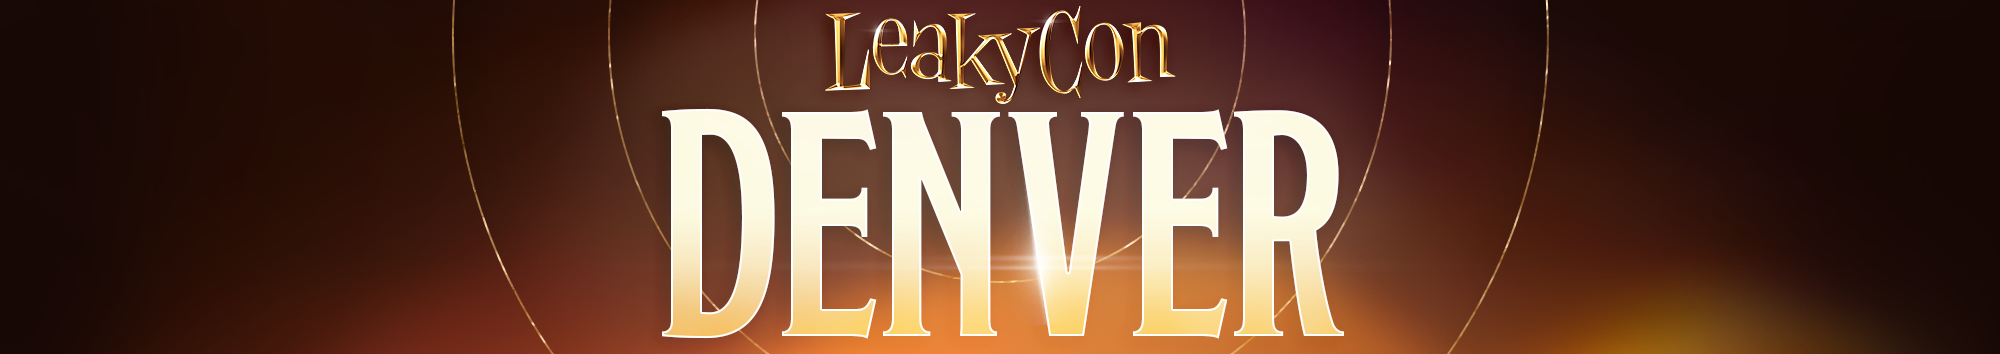 Tickets for LeakyCon 2020: Denver in Denver from ShowClix